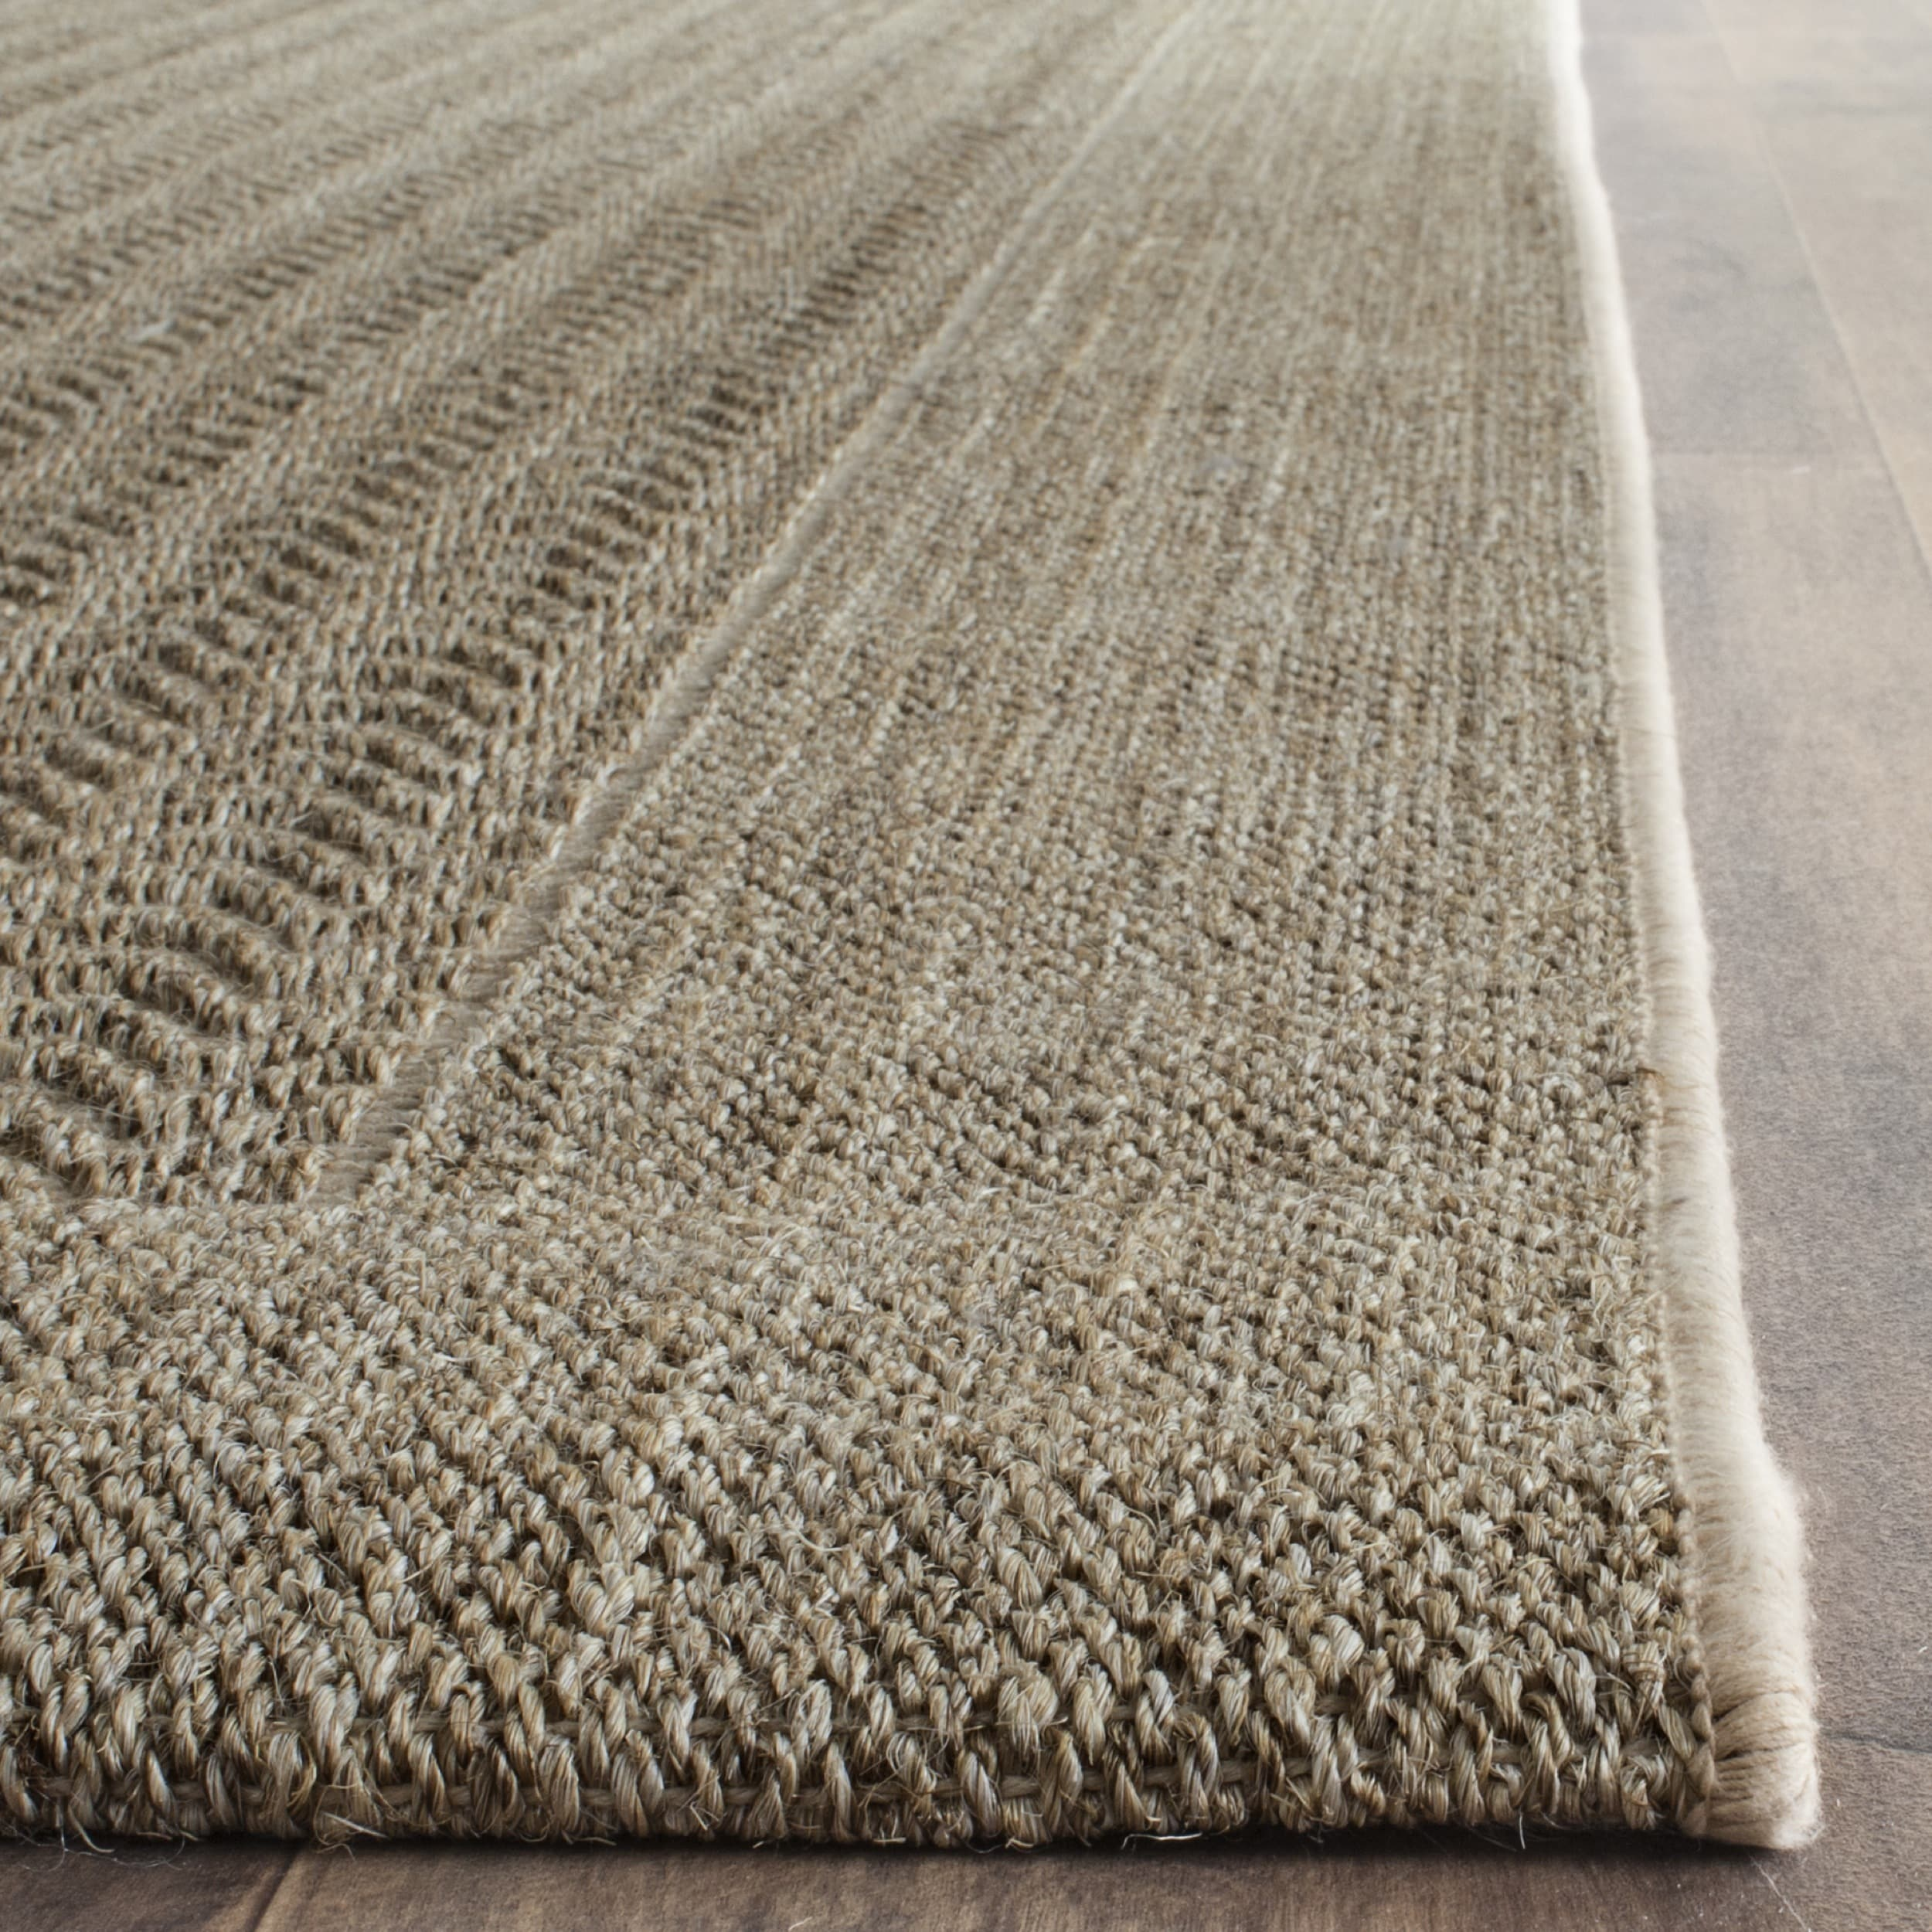 mat from constructed fiber rugs a sisal is diamond greige rug and this mats derived pattern jute pin woven